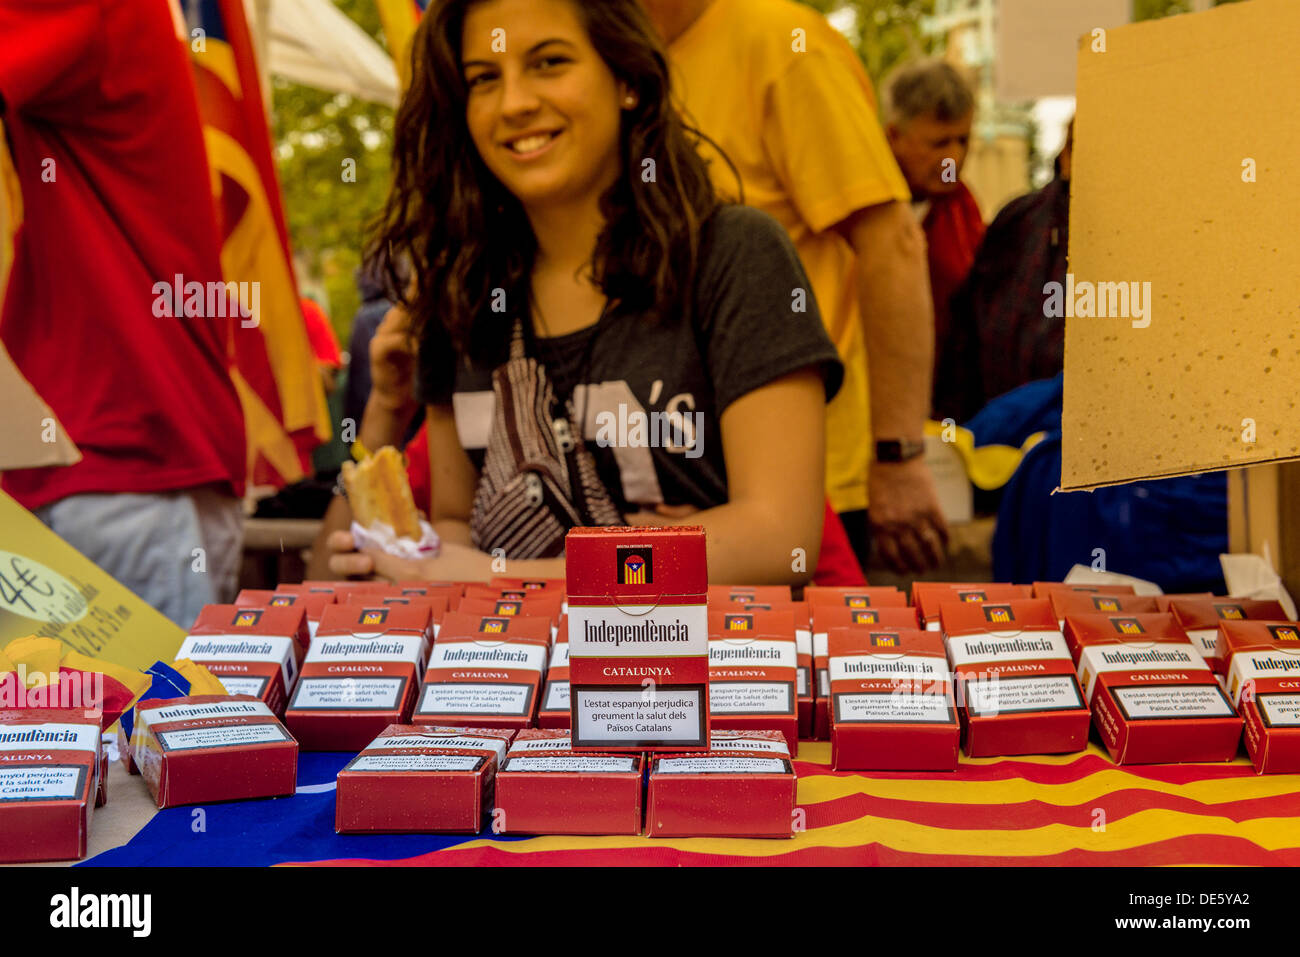 Barcelona, Spain. September 11th, 2013: Countless Catalan devotional objects  in all forms and variations are sold to the masses on September 11th, Catalonia's national day © matthi/Alamy Live News - Stock Image